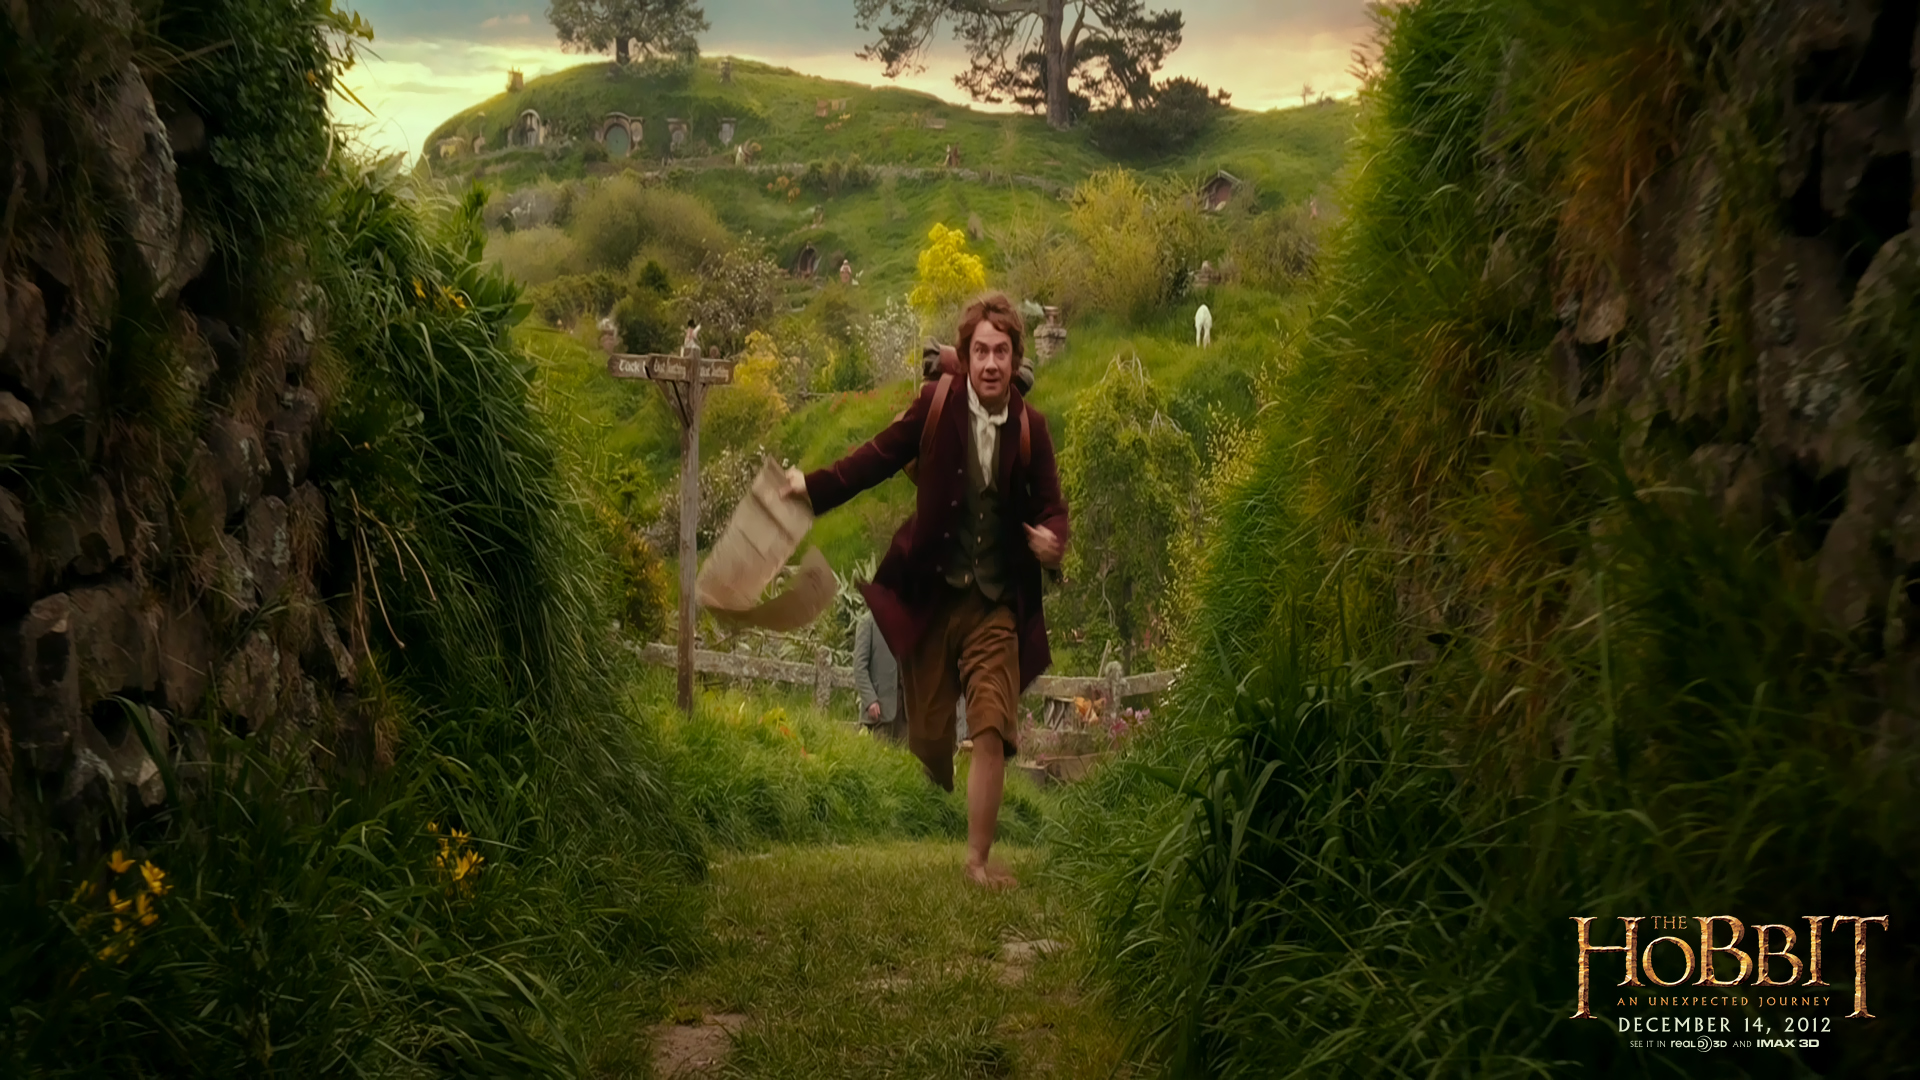 The Hobbit An Unexpected Journey HQ wallpapers 5jpg 1920x1080